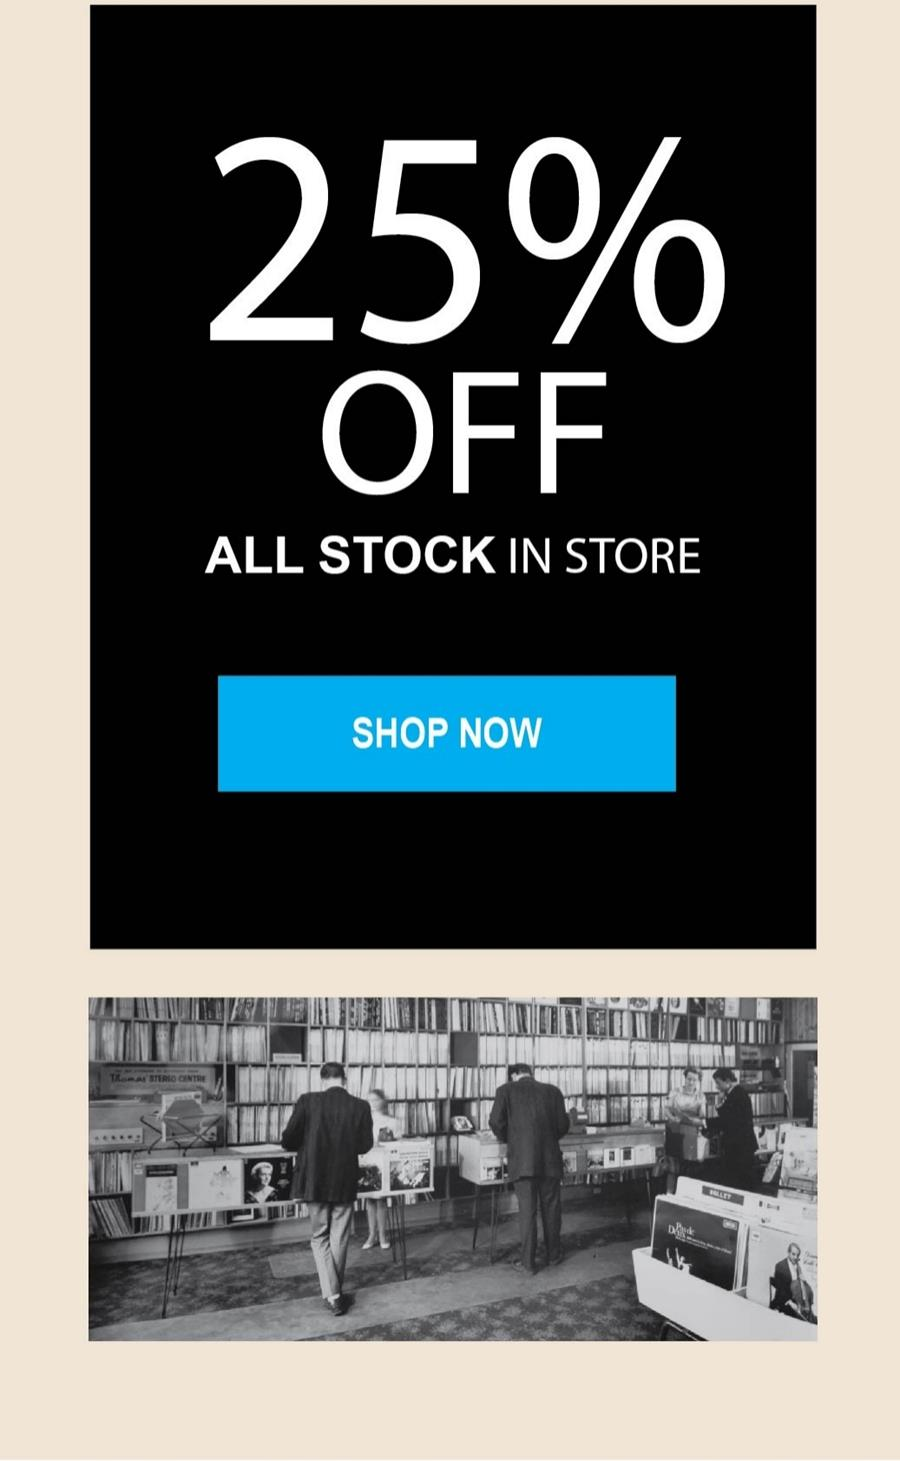 25% OFF ALL STOCK IN STORE